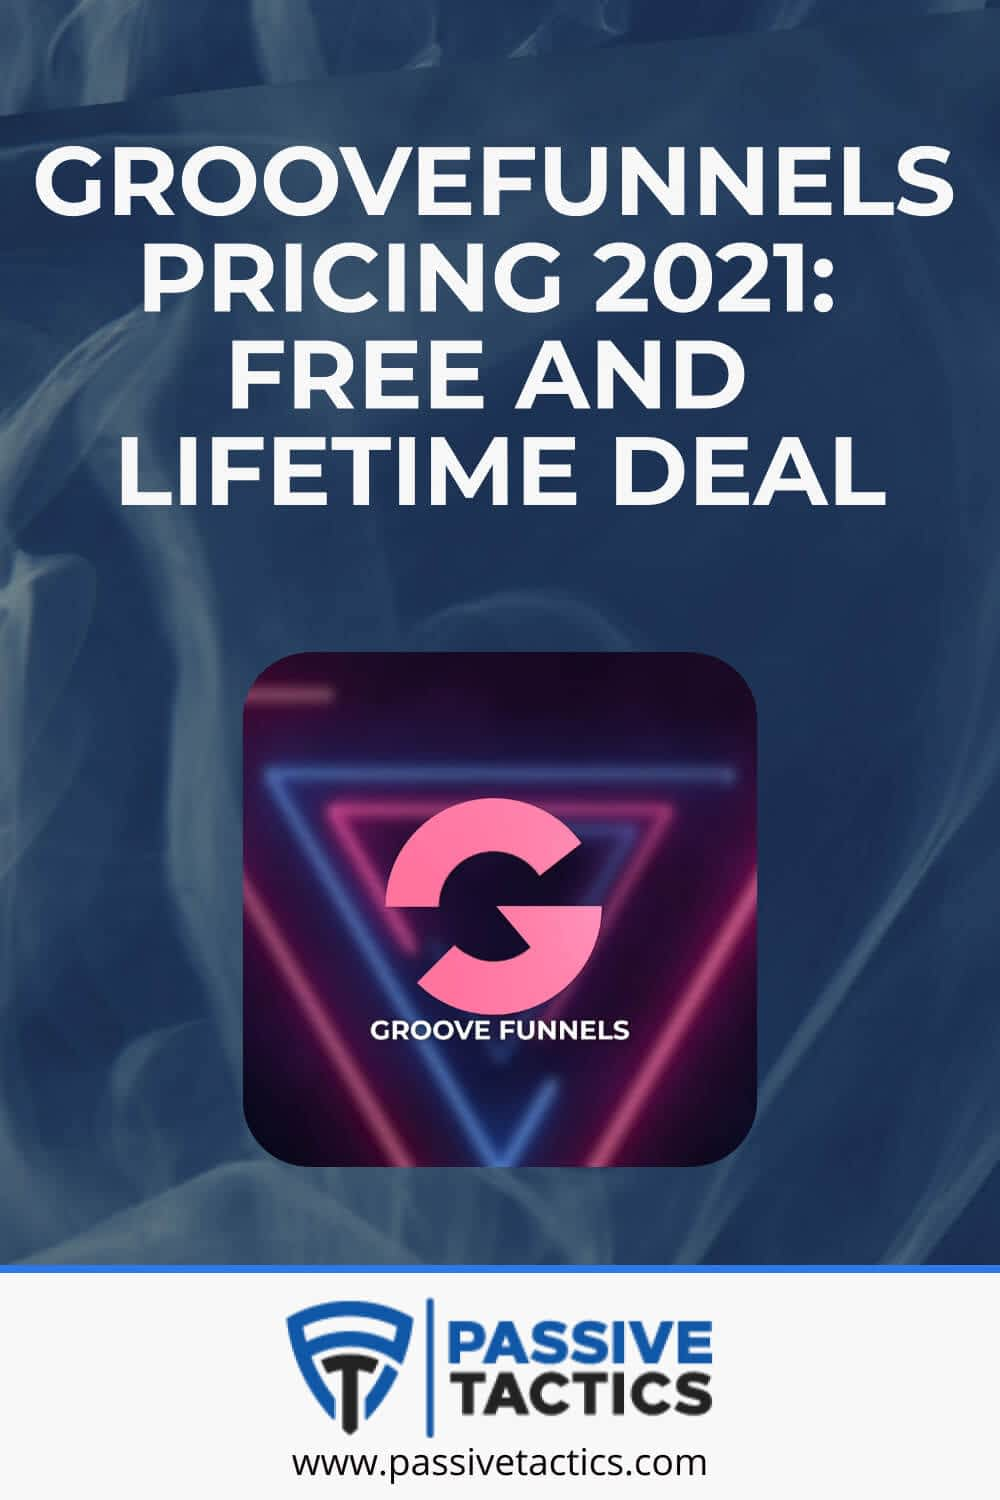 GrooveFunnels Pricing 2021: Free And Lifetime Deal